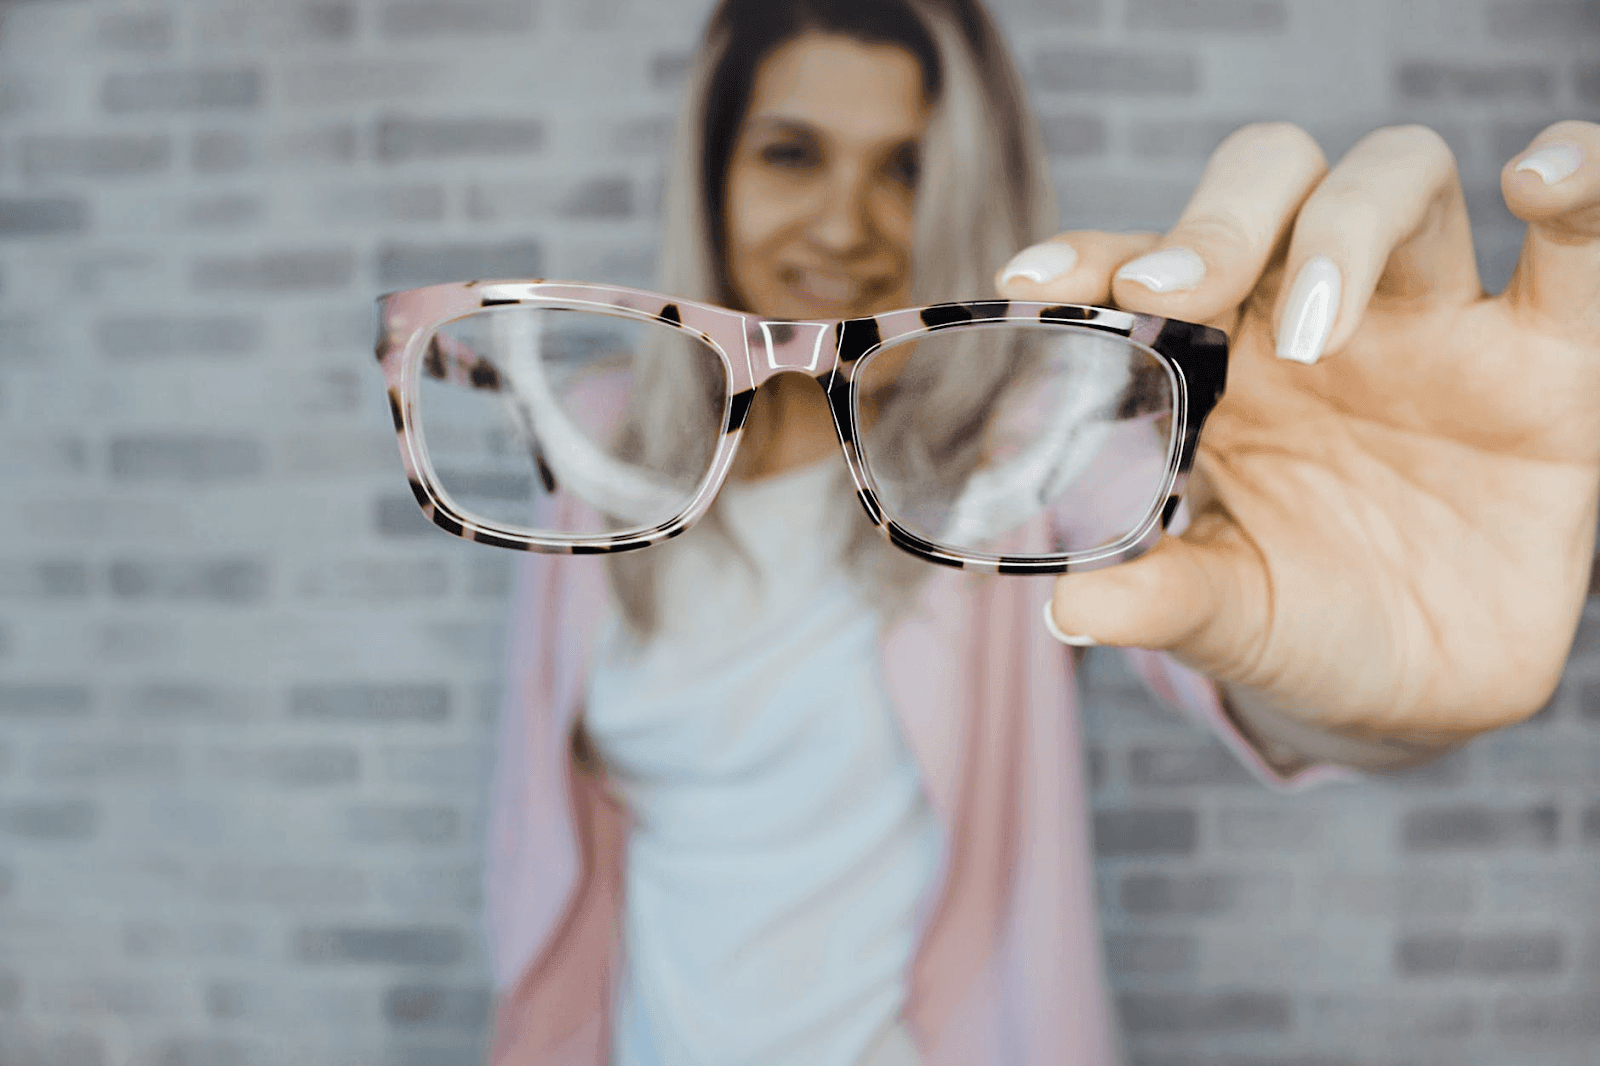 10 Items You Should Be Buying At The Dollar Store (And 5 To Avoid) - Sunglasses and reading glasses